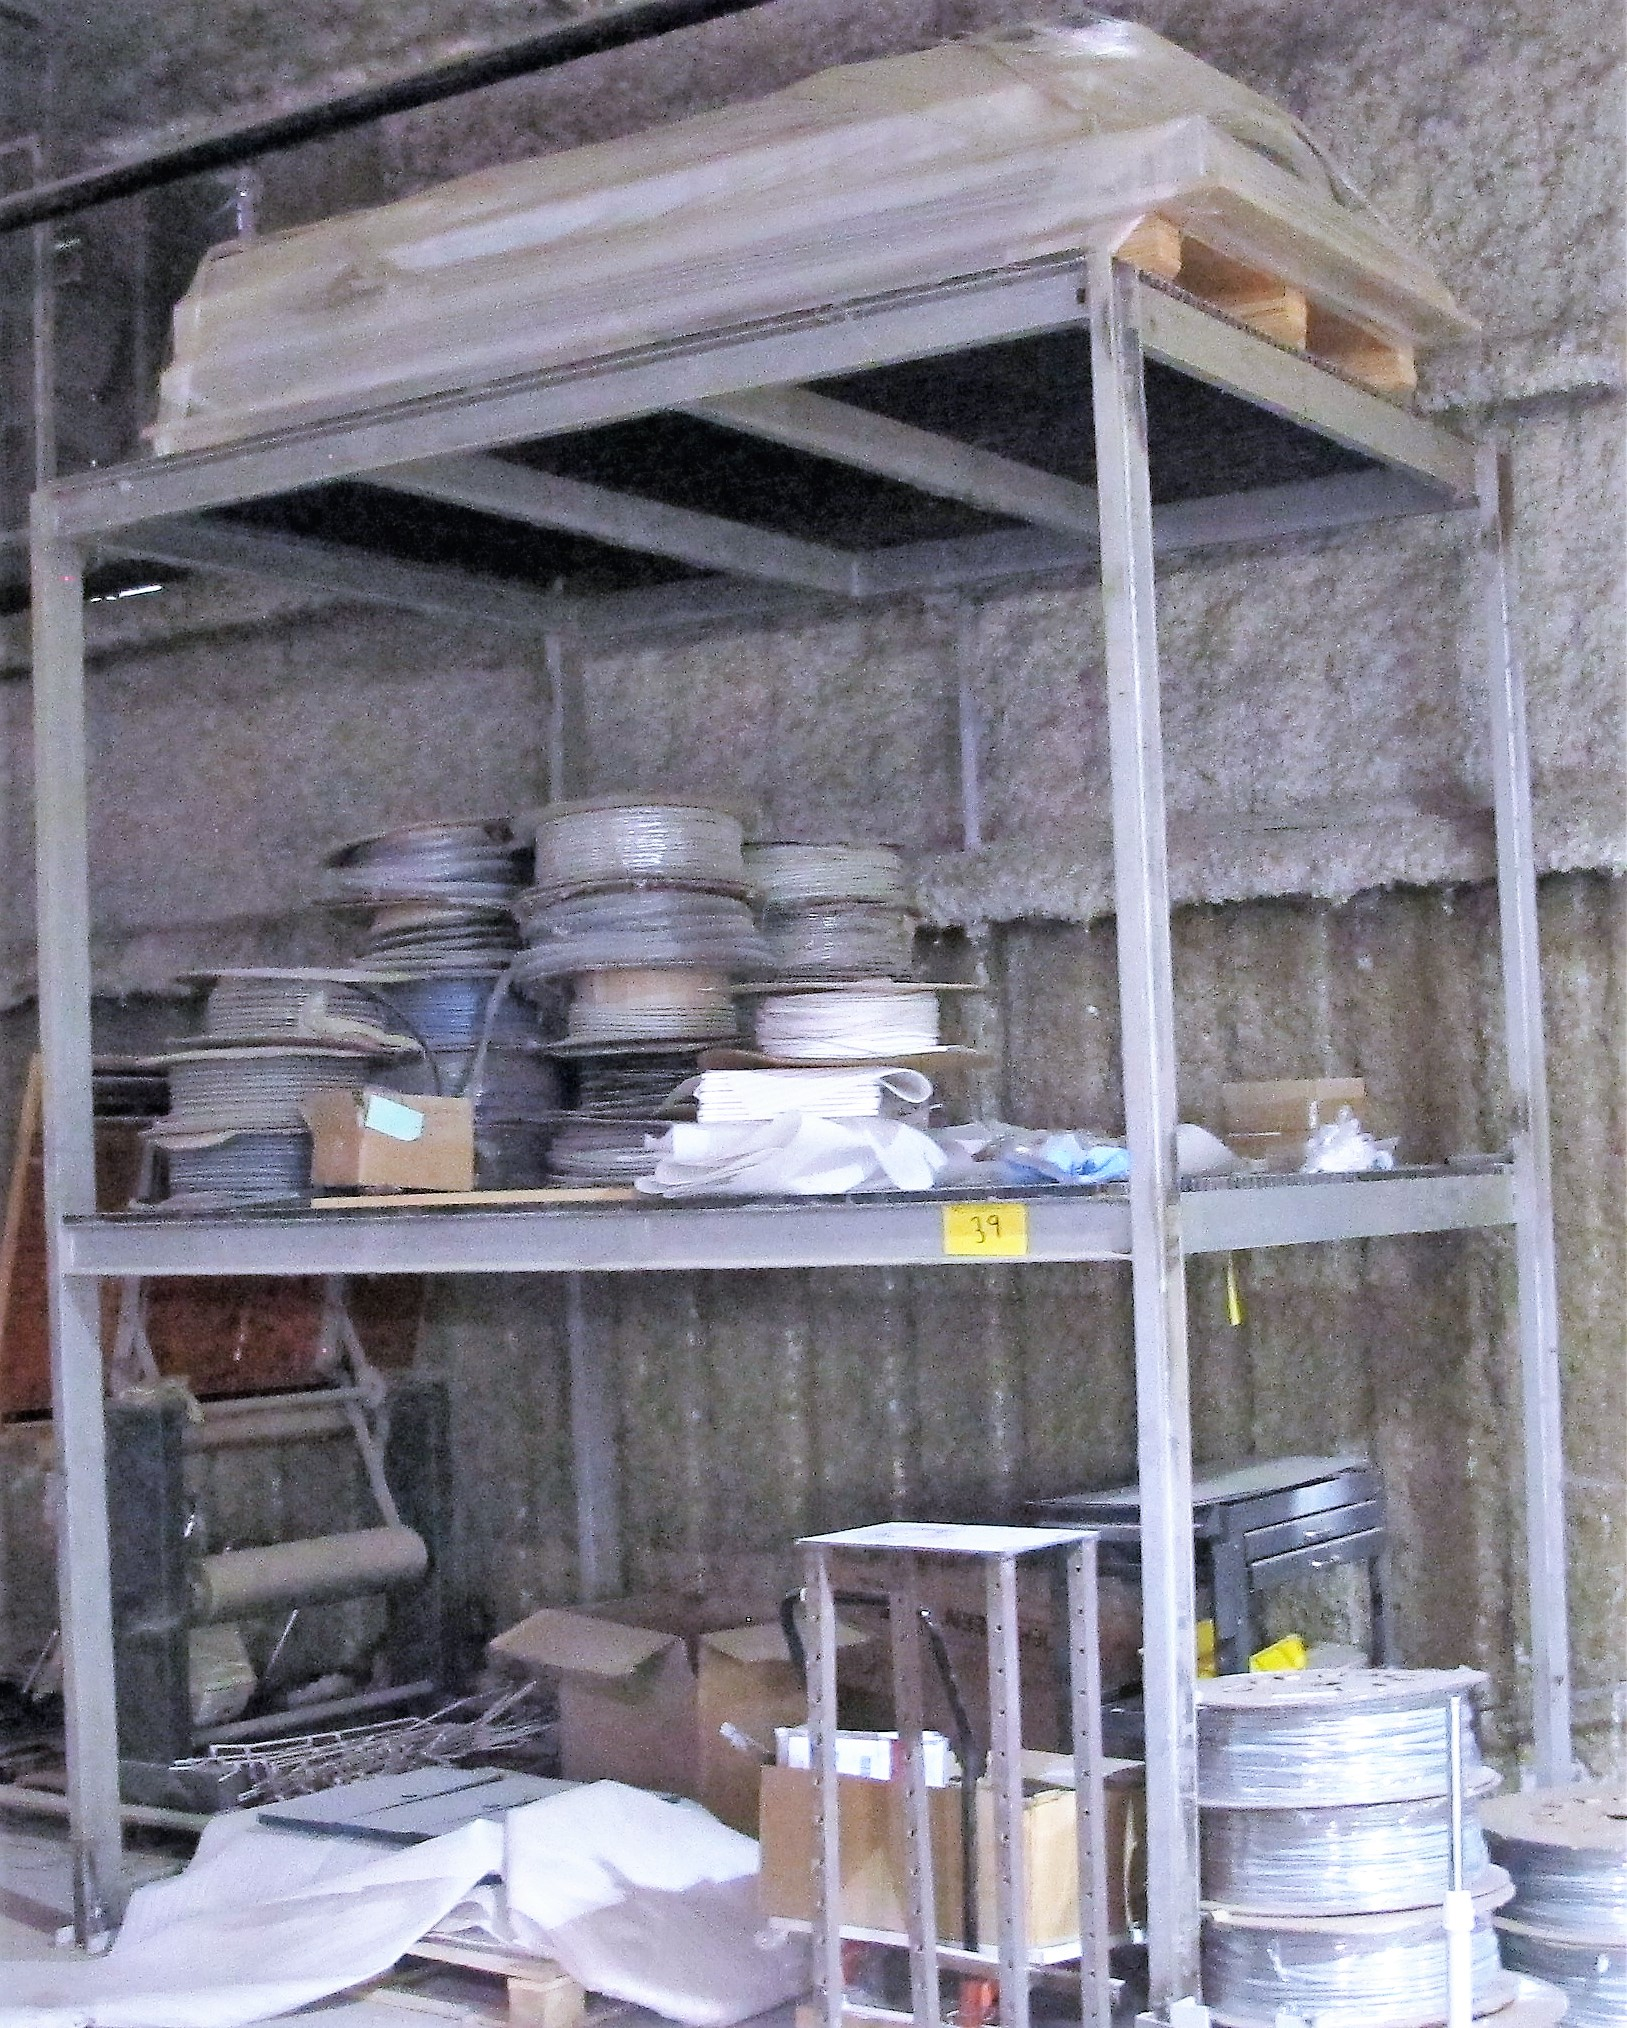 Lot 39 - 2-TIERED METAL RACK W/ CONTENTS